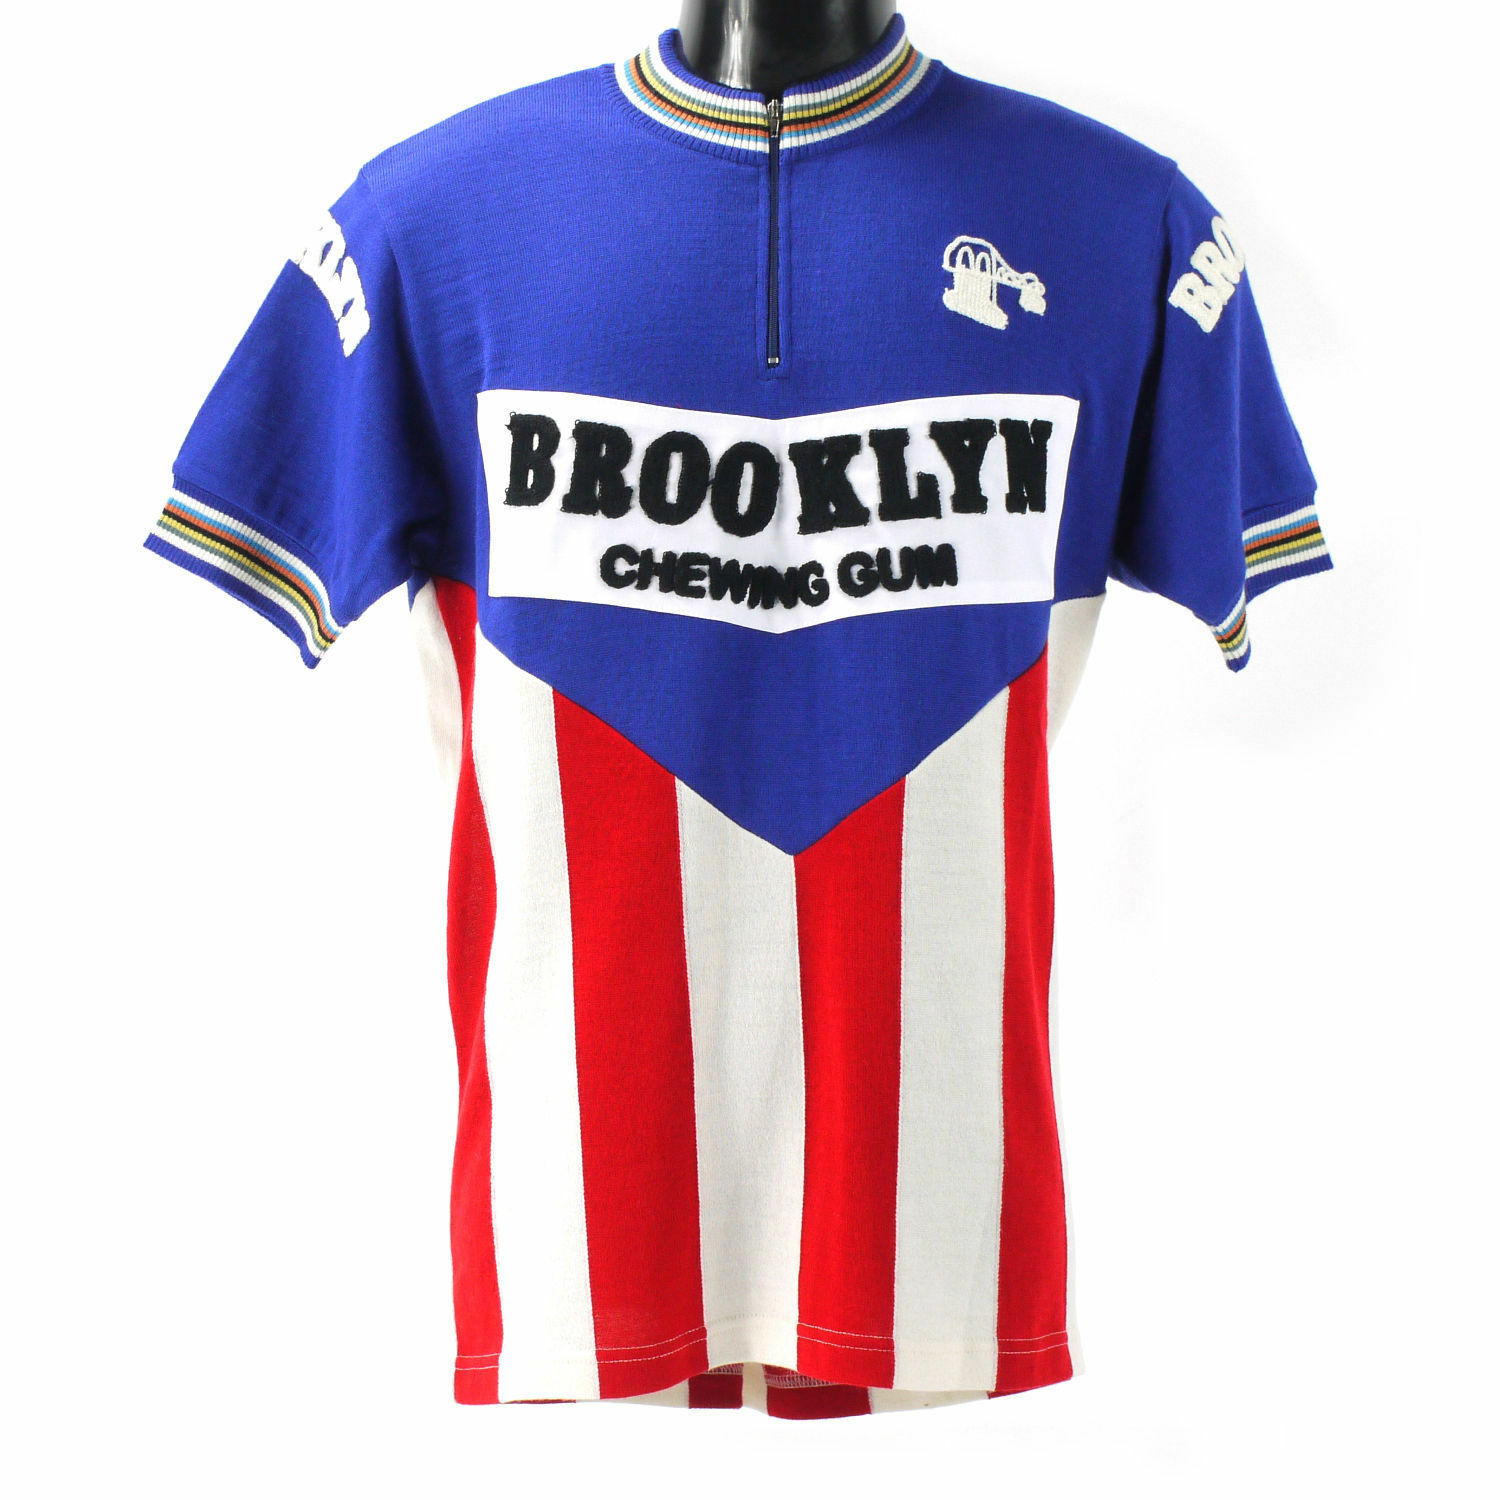 Brooklyn merino wool cycling jersey with chain stit ng  - Eroica  buy cheap new